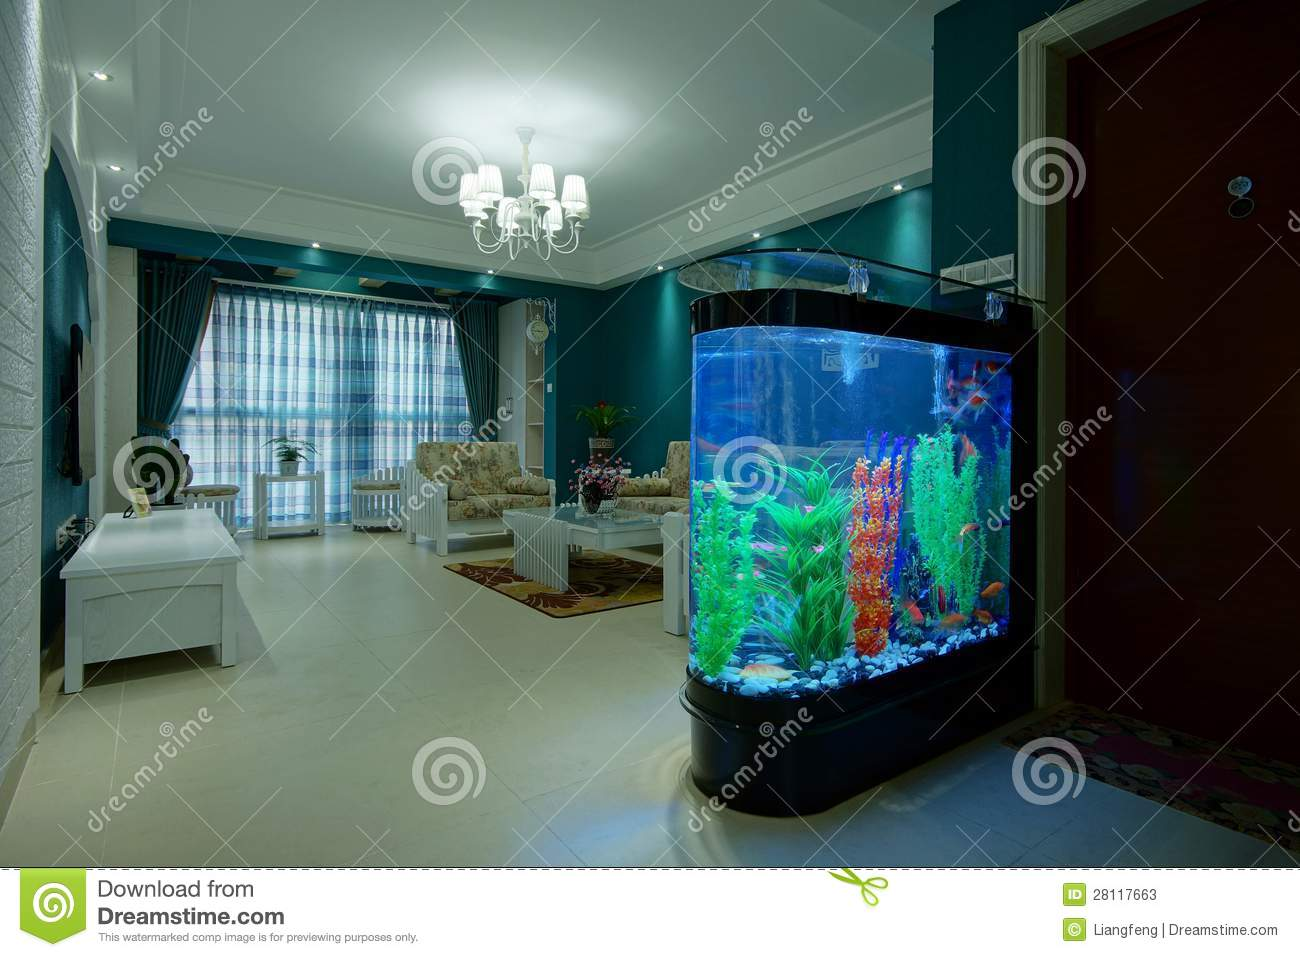 wundersch nen aquarium complet pas cher id es de conception de table basse. Black Bedroom Furniture Sets. Home Design Ideas